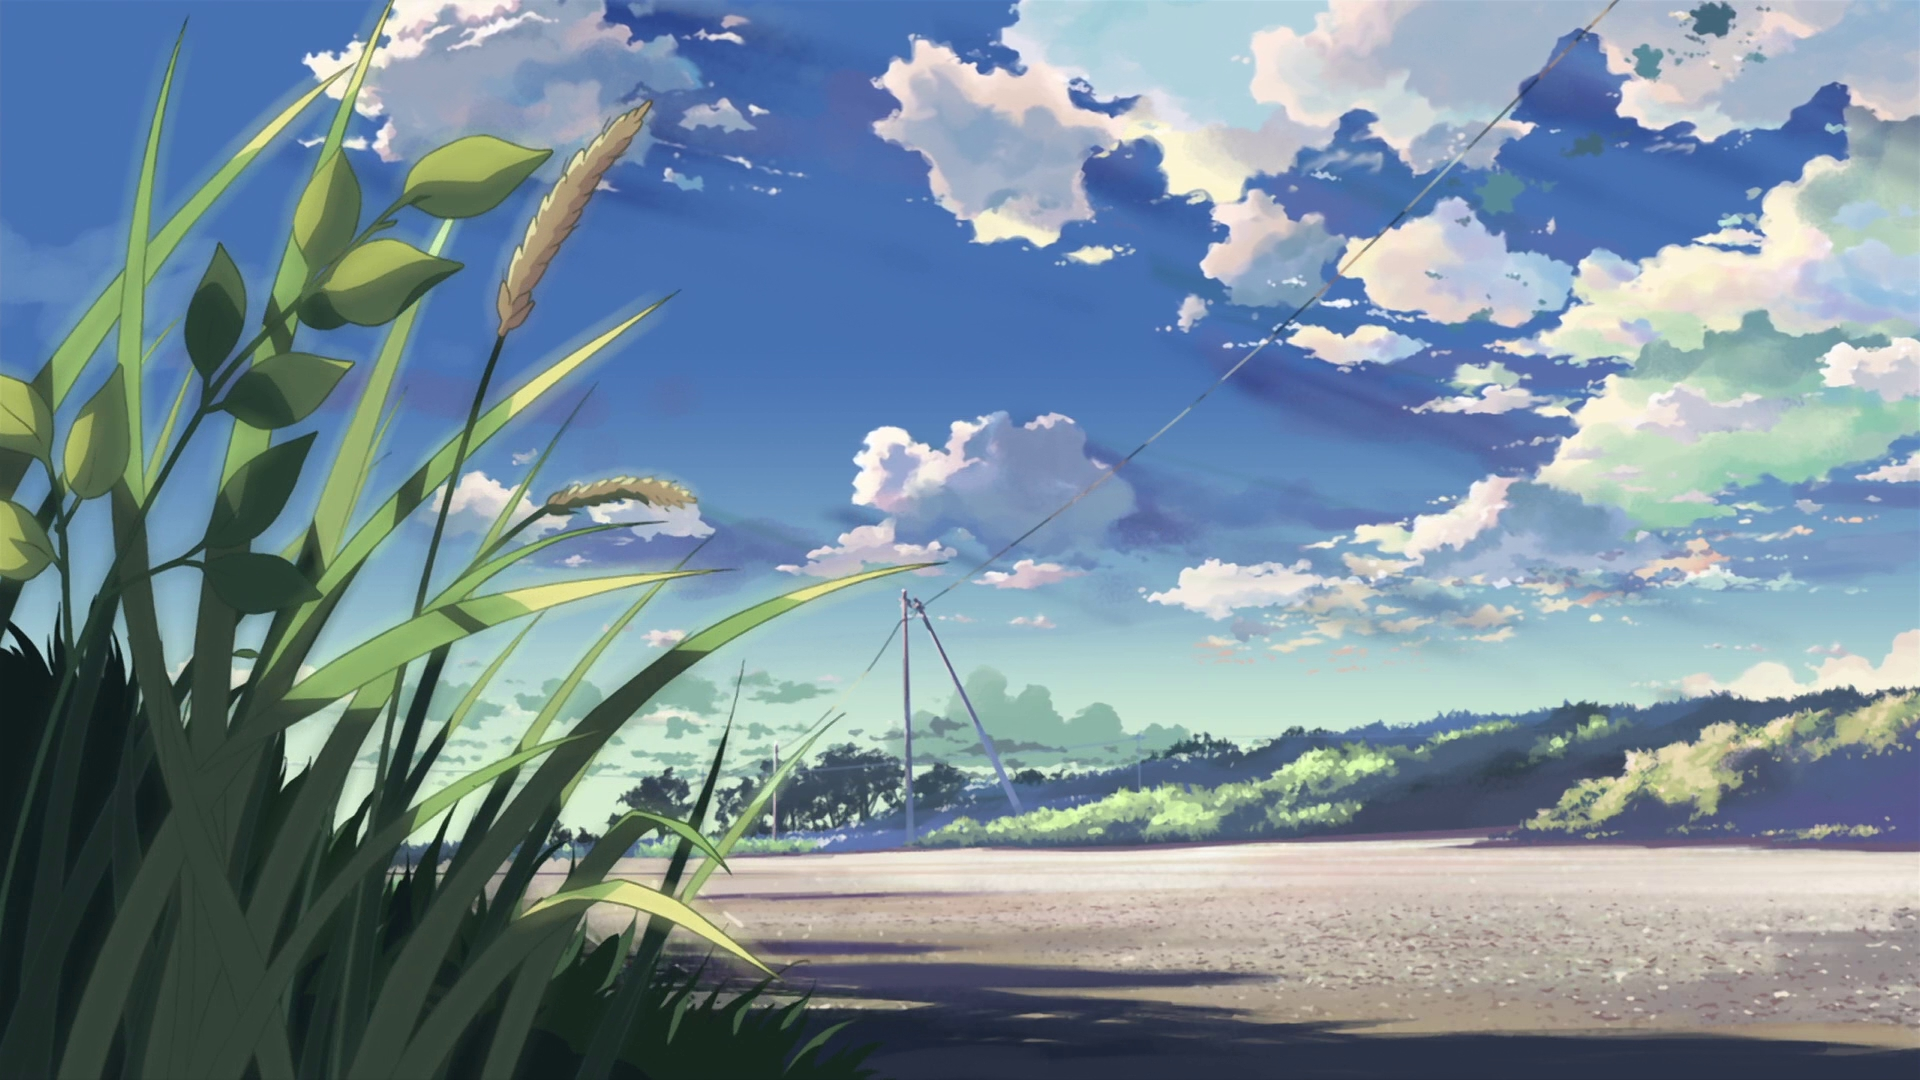 Anime Landscape Wallpaper HD